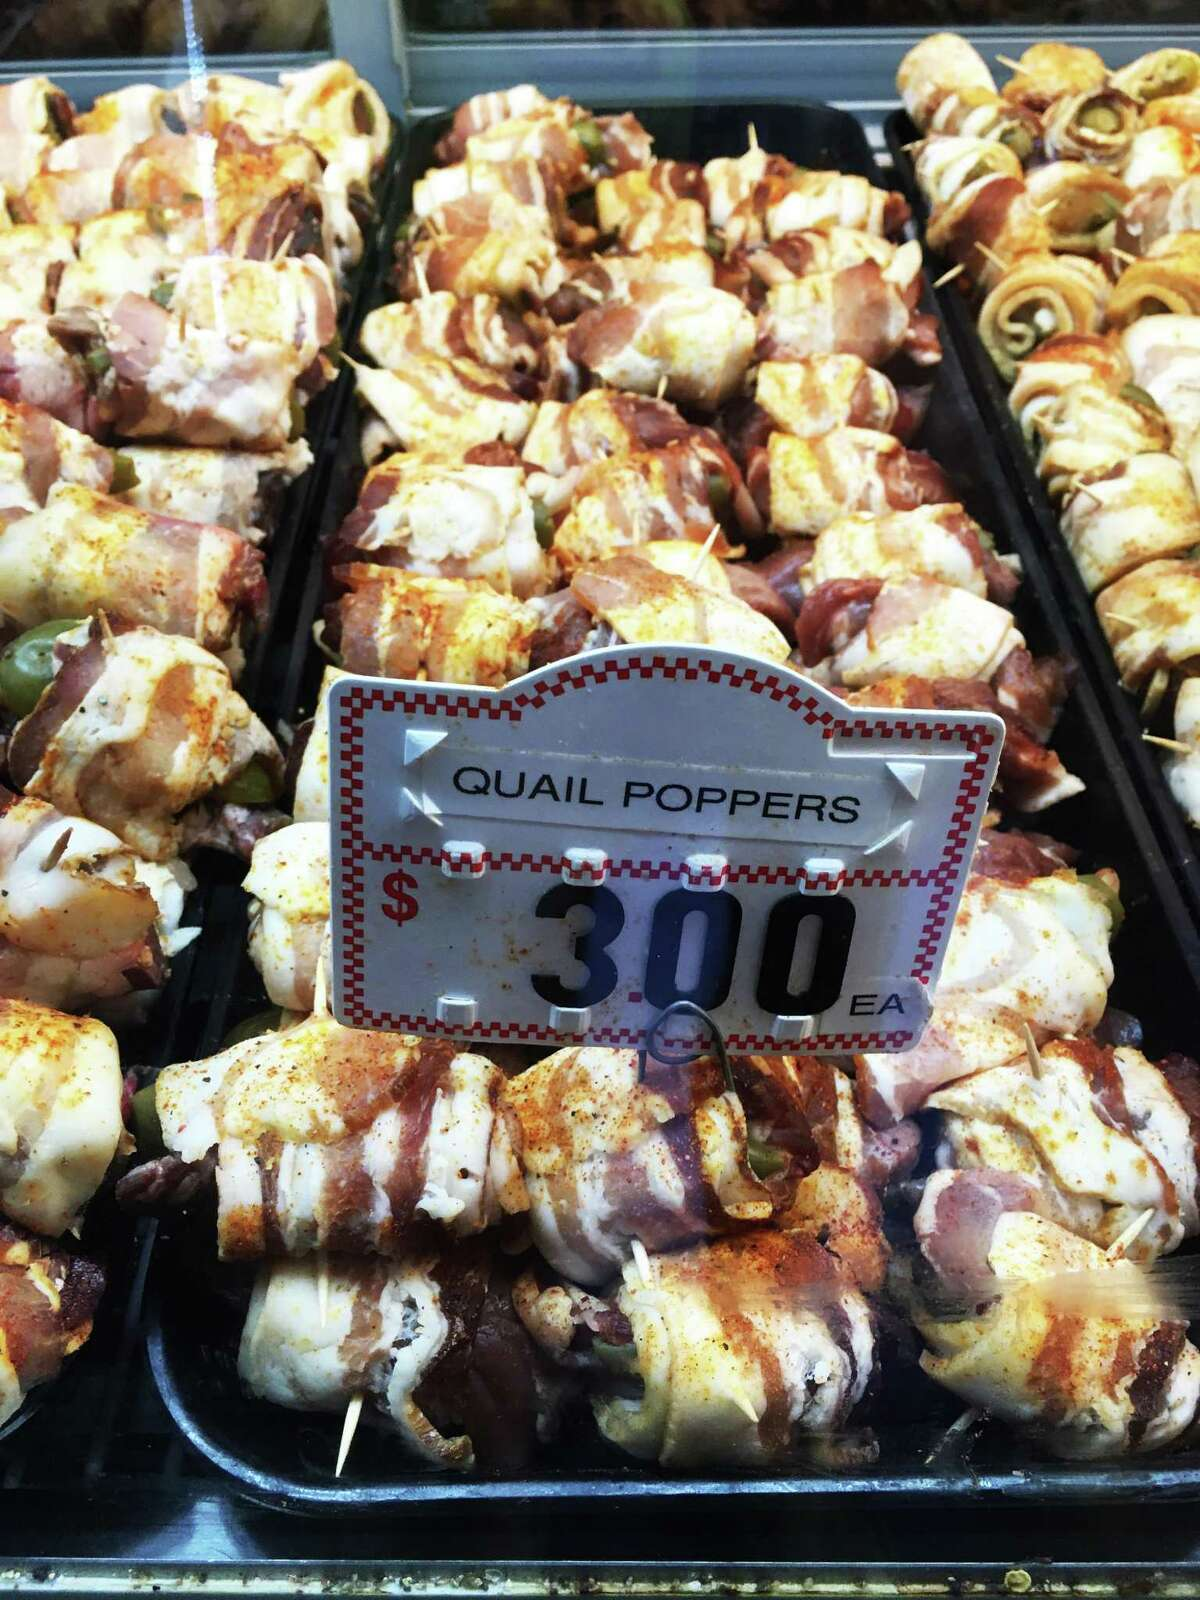 Quail poppers are sold for $3 each at Chick's Prime Meat Market in Spring Branch.